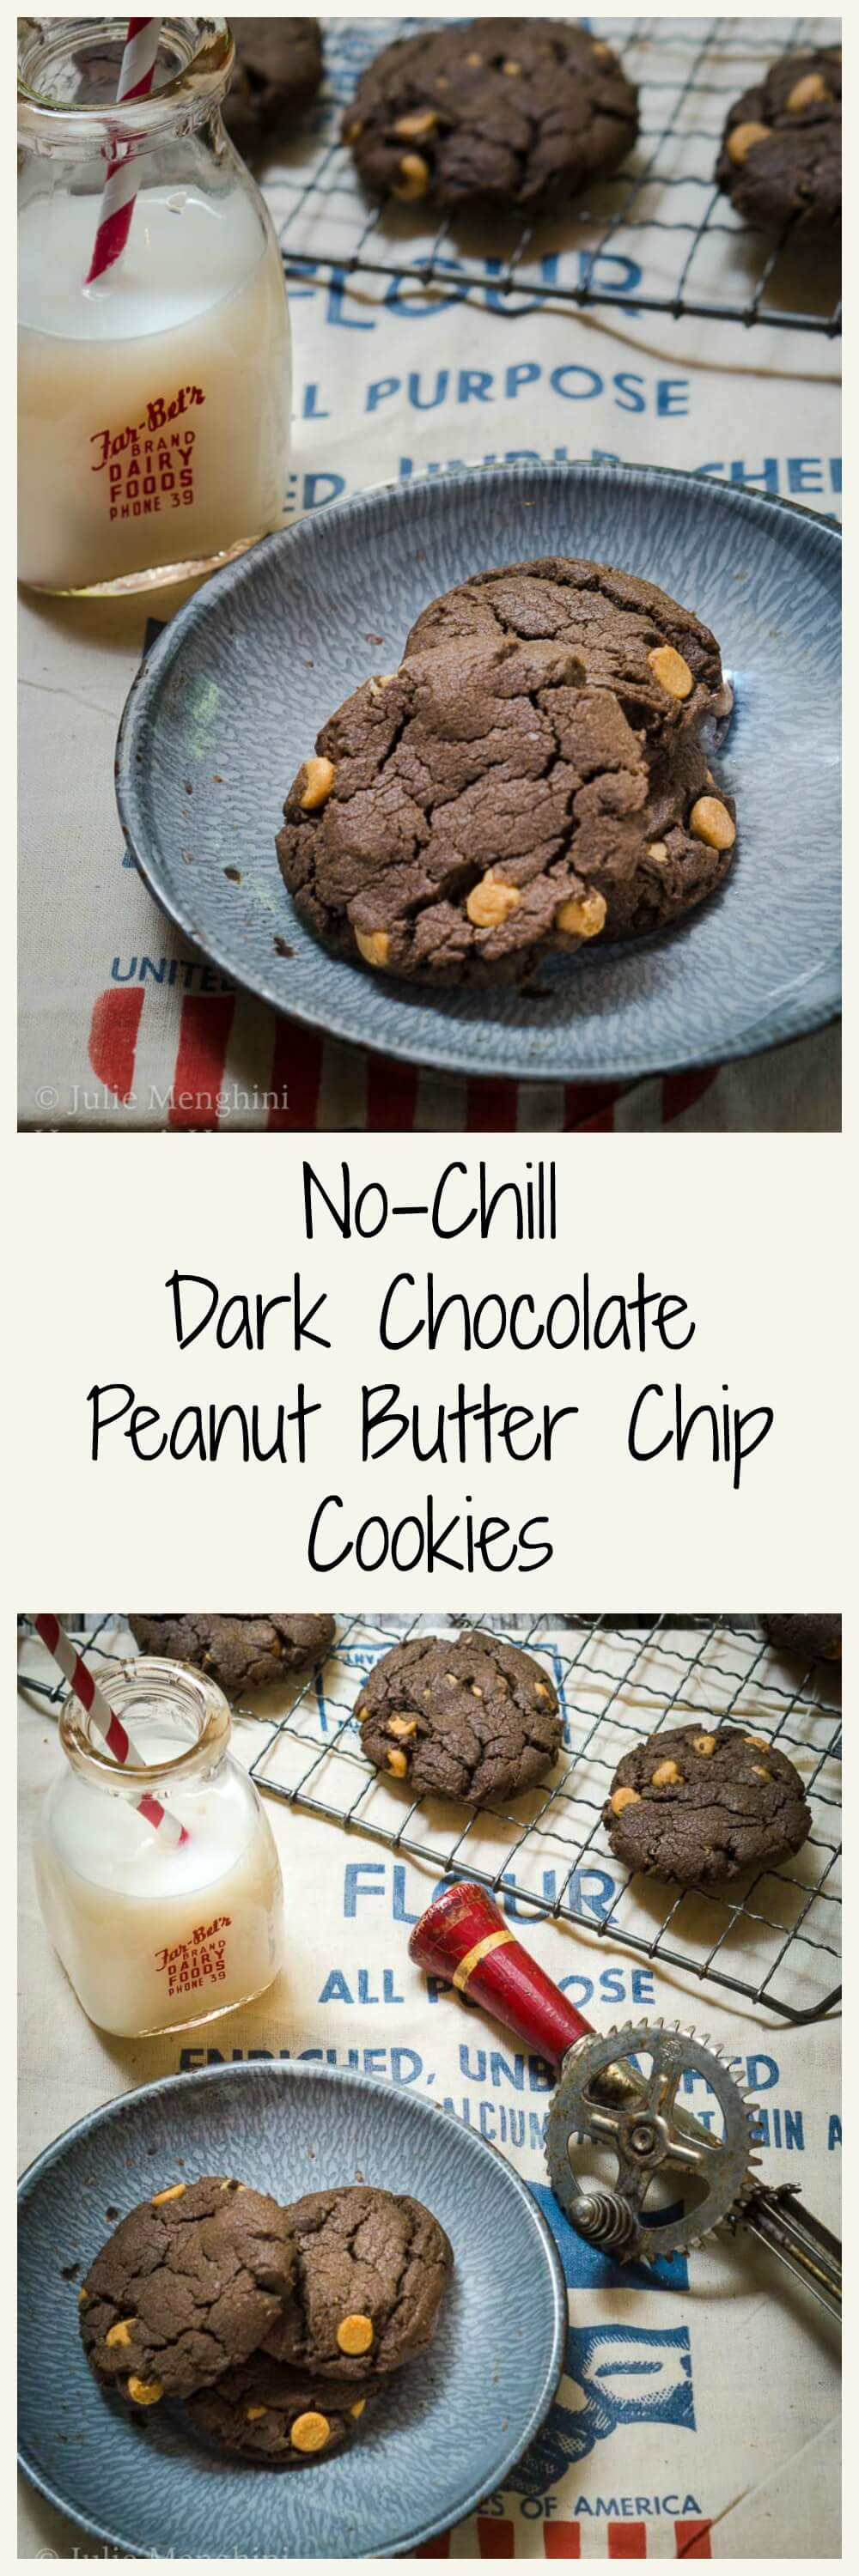 No-Chill Dark Chocolate Peanut Butter Cookies are magic little discs of delicious decadence that will soon become one of your most requested cookies!